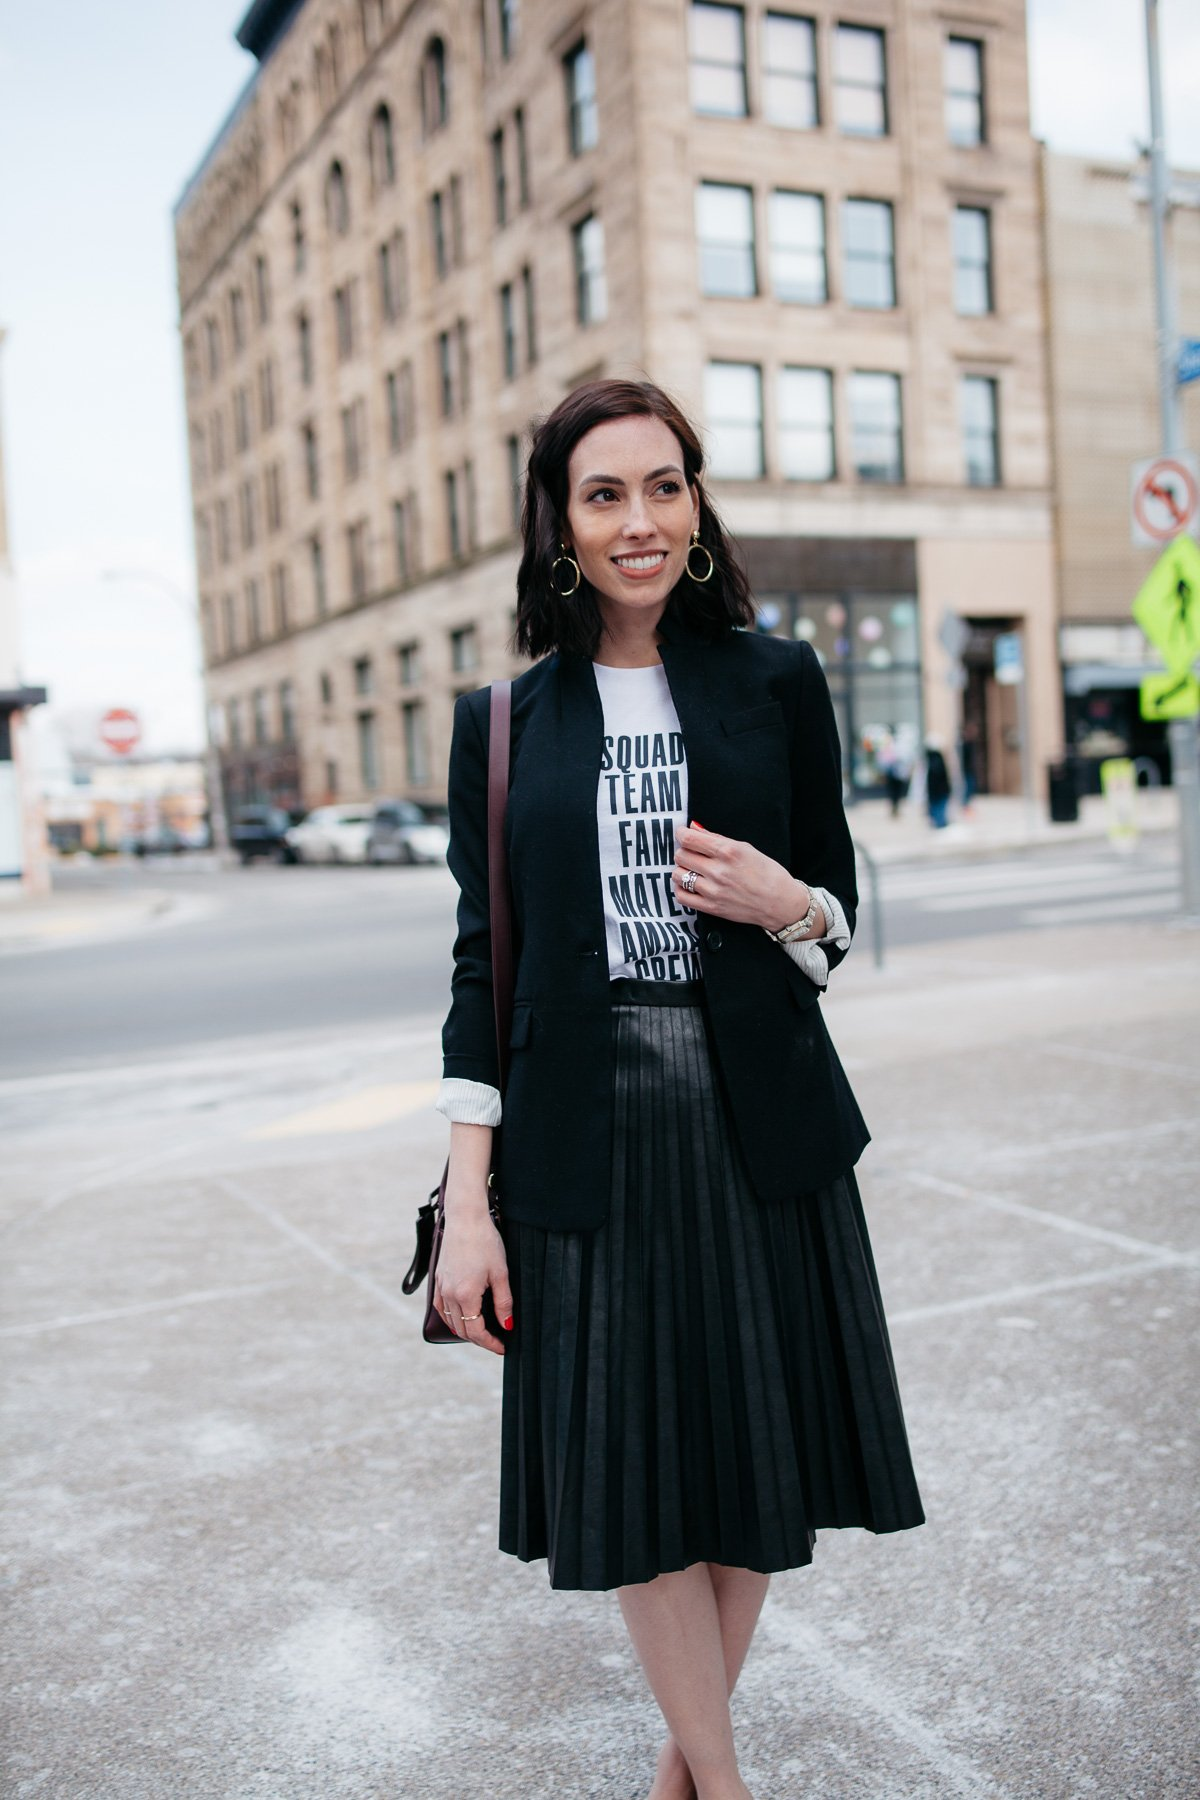 Top US fashion blogger, Wellesley & King, styles a graphic tshirt three ways: girl in tshirt, jcrew blazer, and leather midi skirt outfit